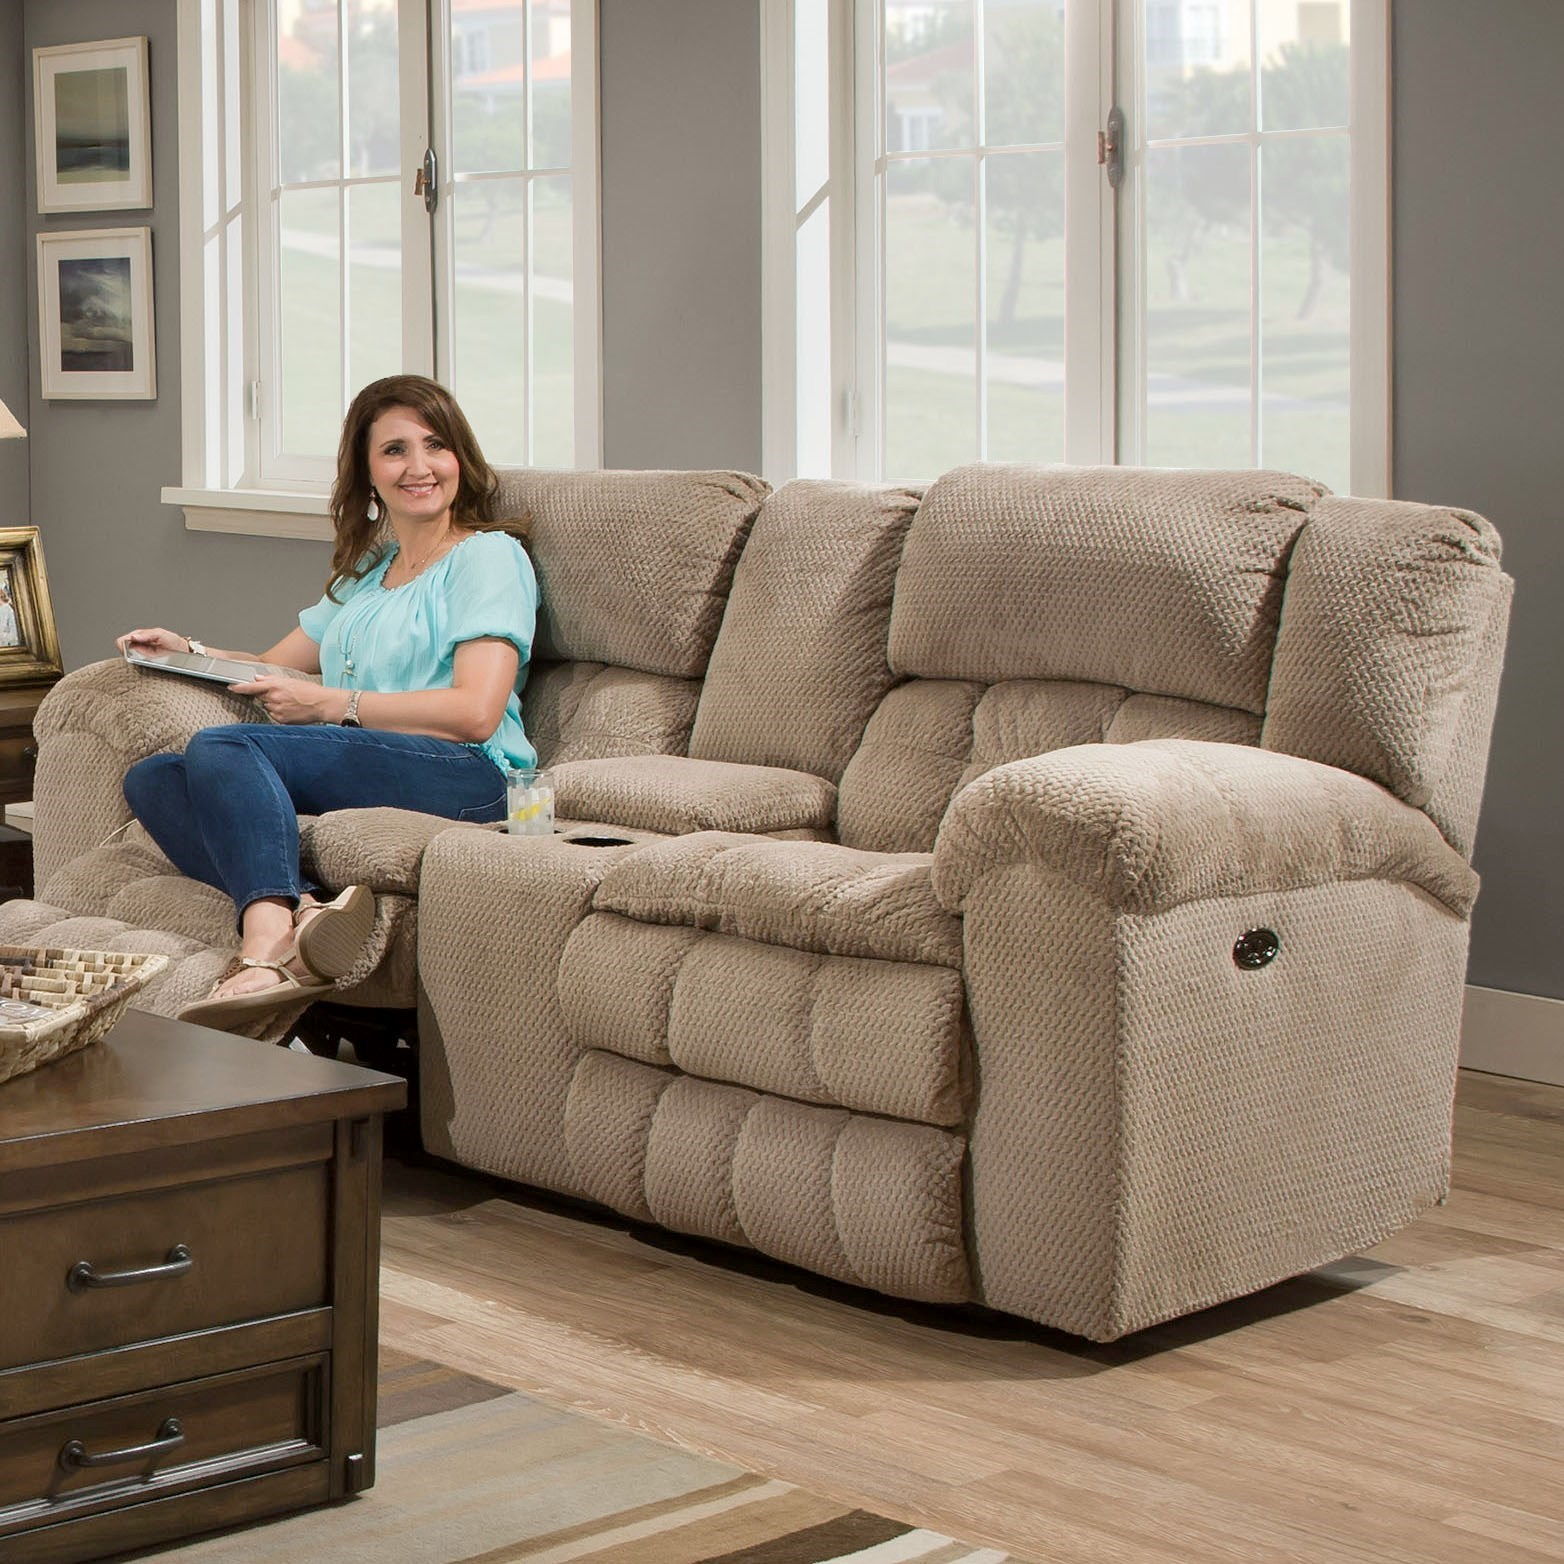 50580BR Power Double Motion Loveseat by United Furniture Industries at Dream Home Interiors